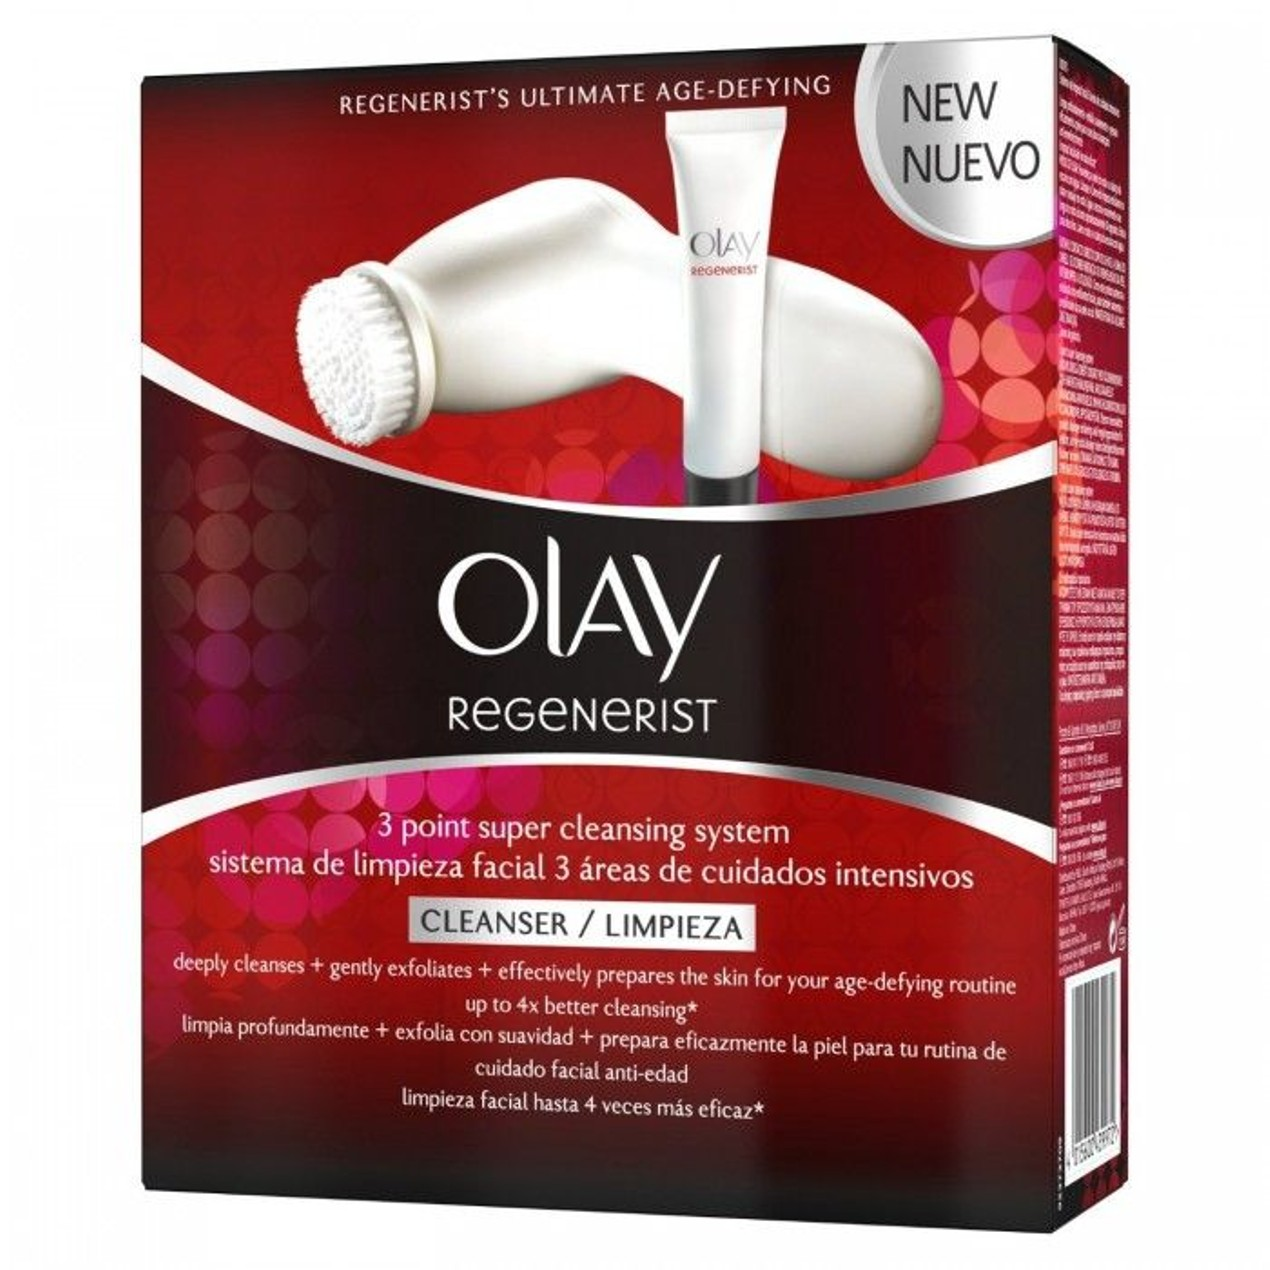 Olay Regenerist Micro Sculpting Super Cleansing System Tanga Sclupting Serum By